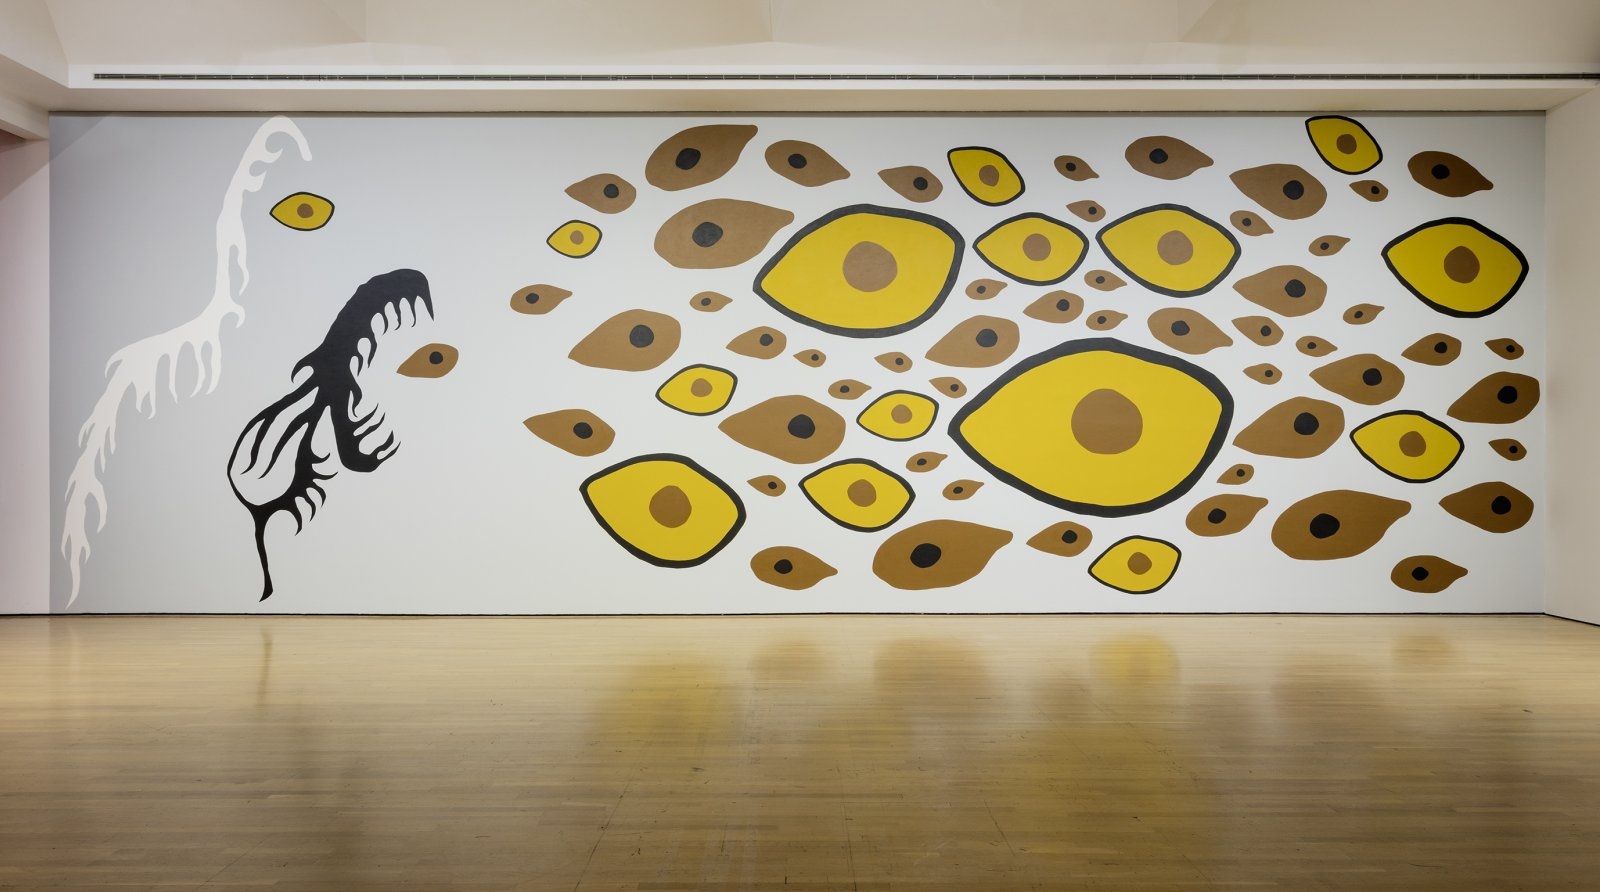 Duane Linklater, Earth Mother Hair, Indian Hair, and Earth Mother Eyes, Indian Eyes, Animal Eyes, 2017, paint on wall, dimensions variable